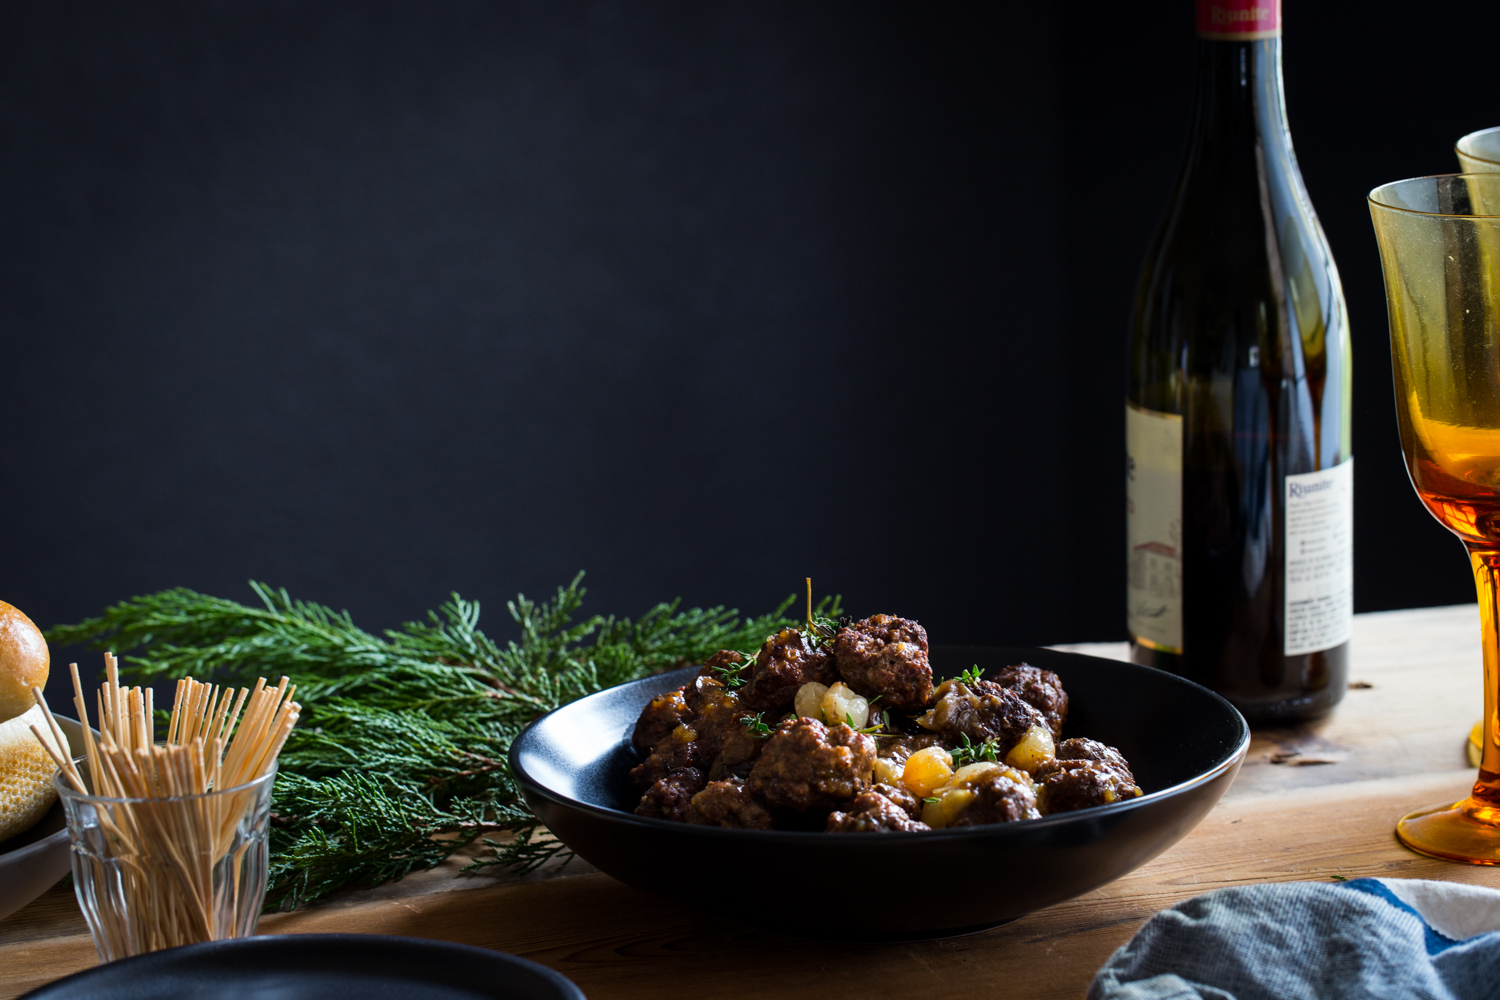 Beef Bourguignon Meatballs will be a great fit for any holiday spread!